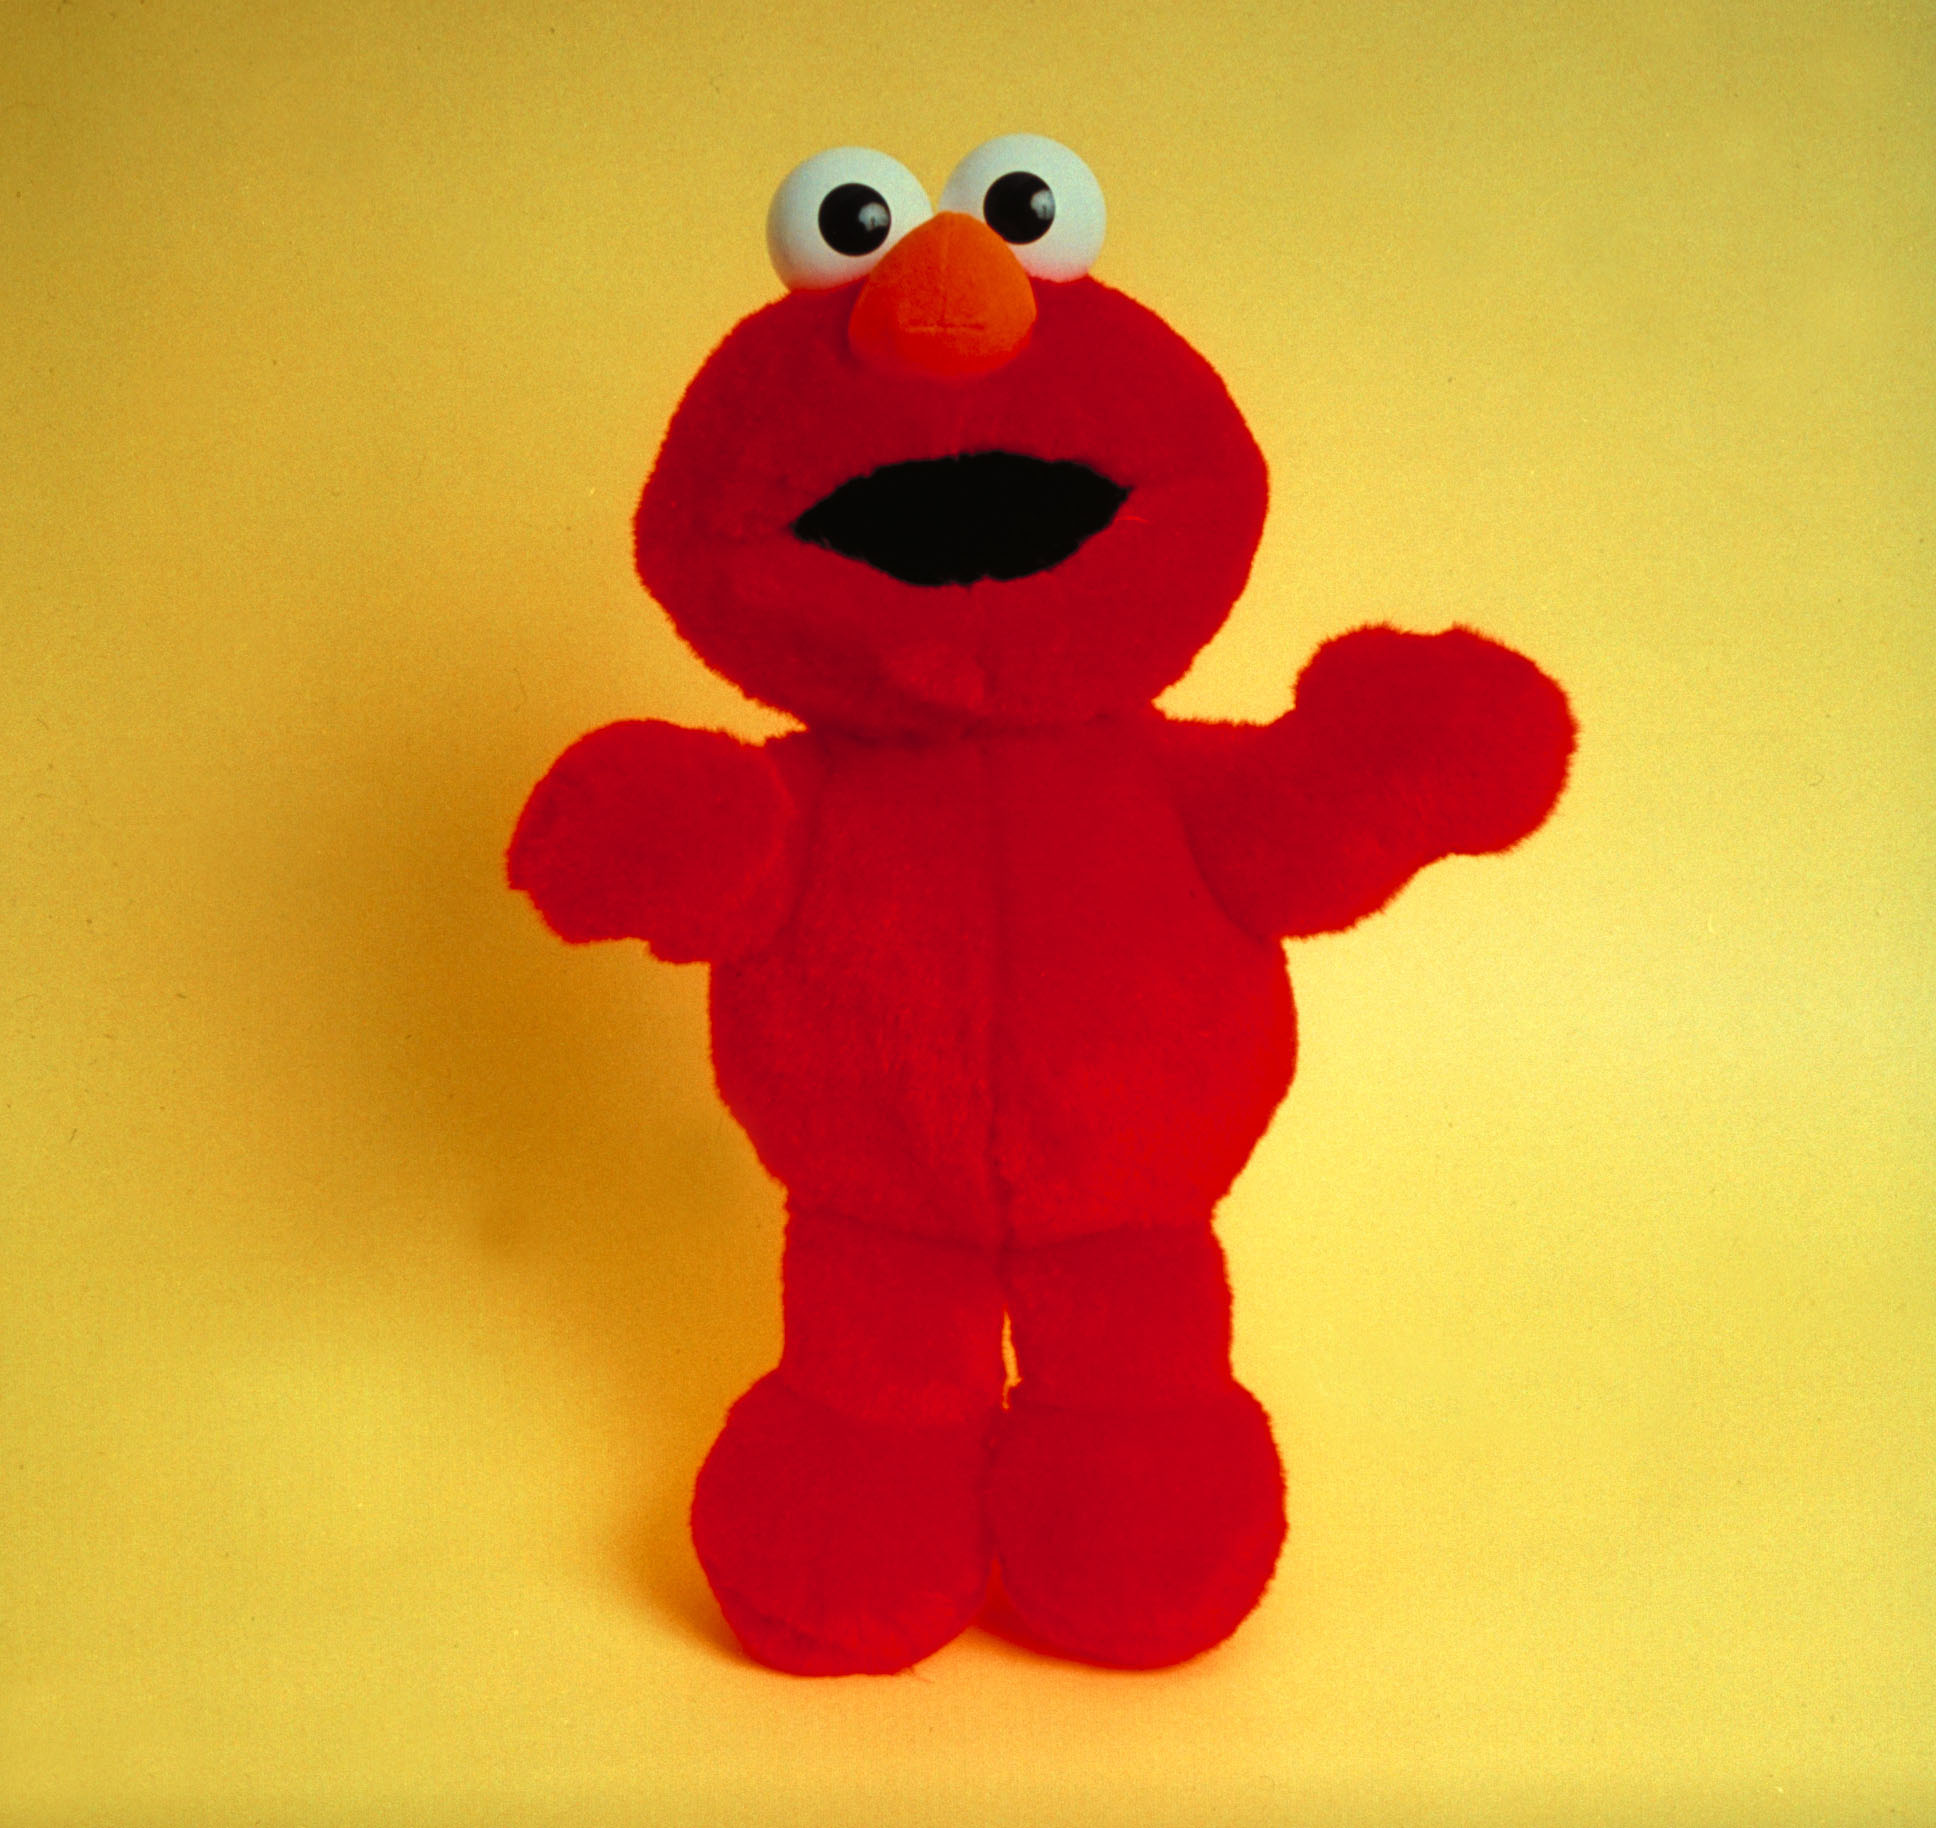 A FURLESS 'Tickle-Me-Elmo' is Terrifying! [WATCH]